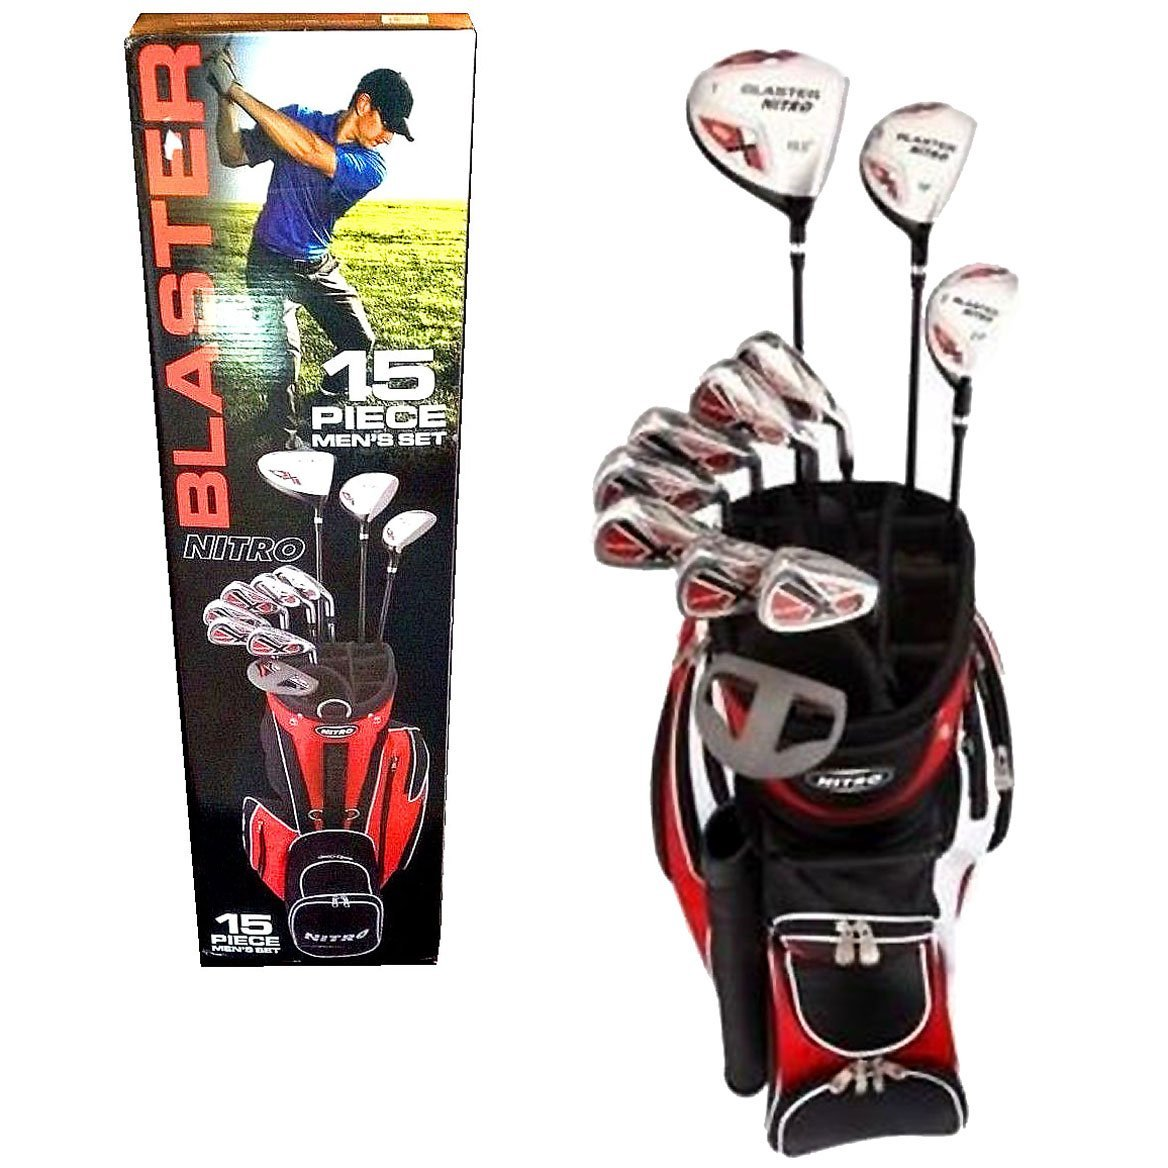 NITRO Blaster Men's 15 Piece Right Handed Golf Set with 1 Driver (#1), 1 Fairway Wood (#3), 1 Hybrid (#3), 6 Irons (#5, #6, #7, #8, #9 and P), Putter and 3 Matching Covers Plus Golf Bag with 6 Compartmental Top, 3 Pockets and Comfortable Carry Strap